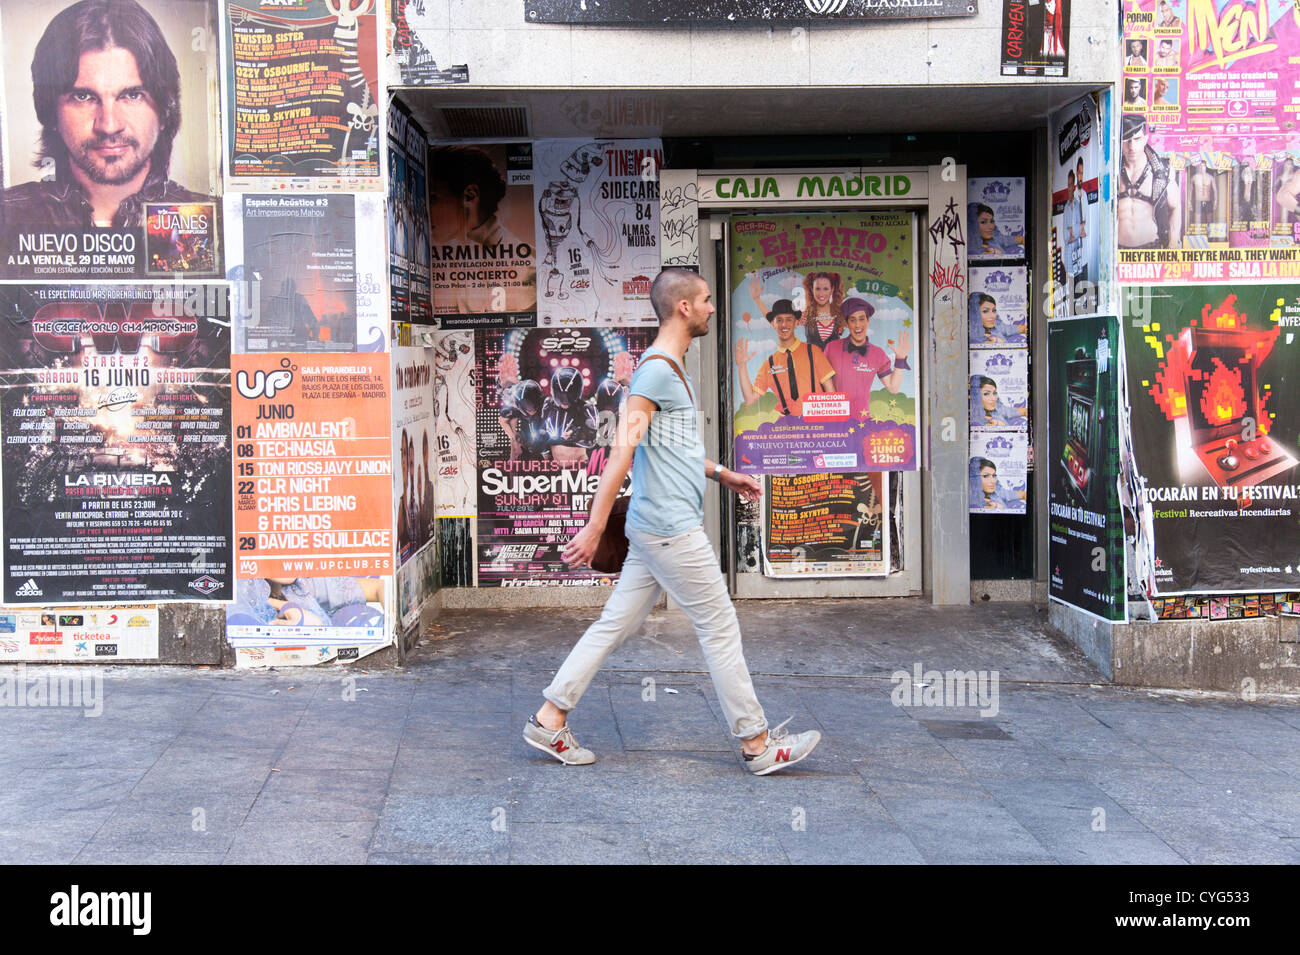 Young man walking past closed down bank branch of Caja Madrid, now part of Bankia, Madrid, Spain - Stock Image